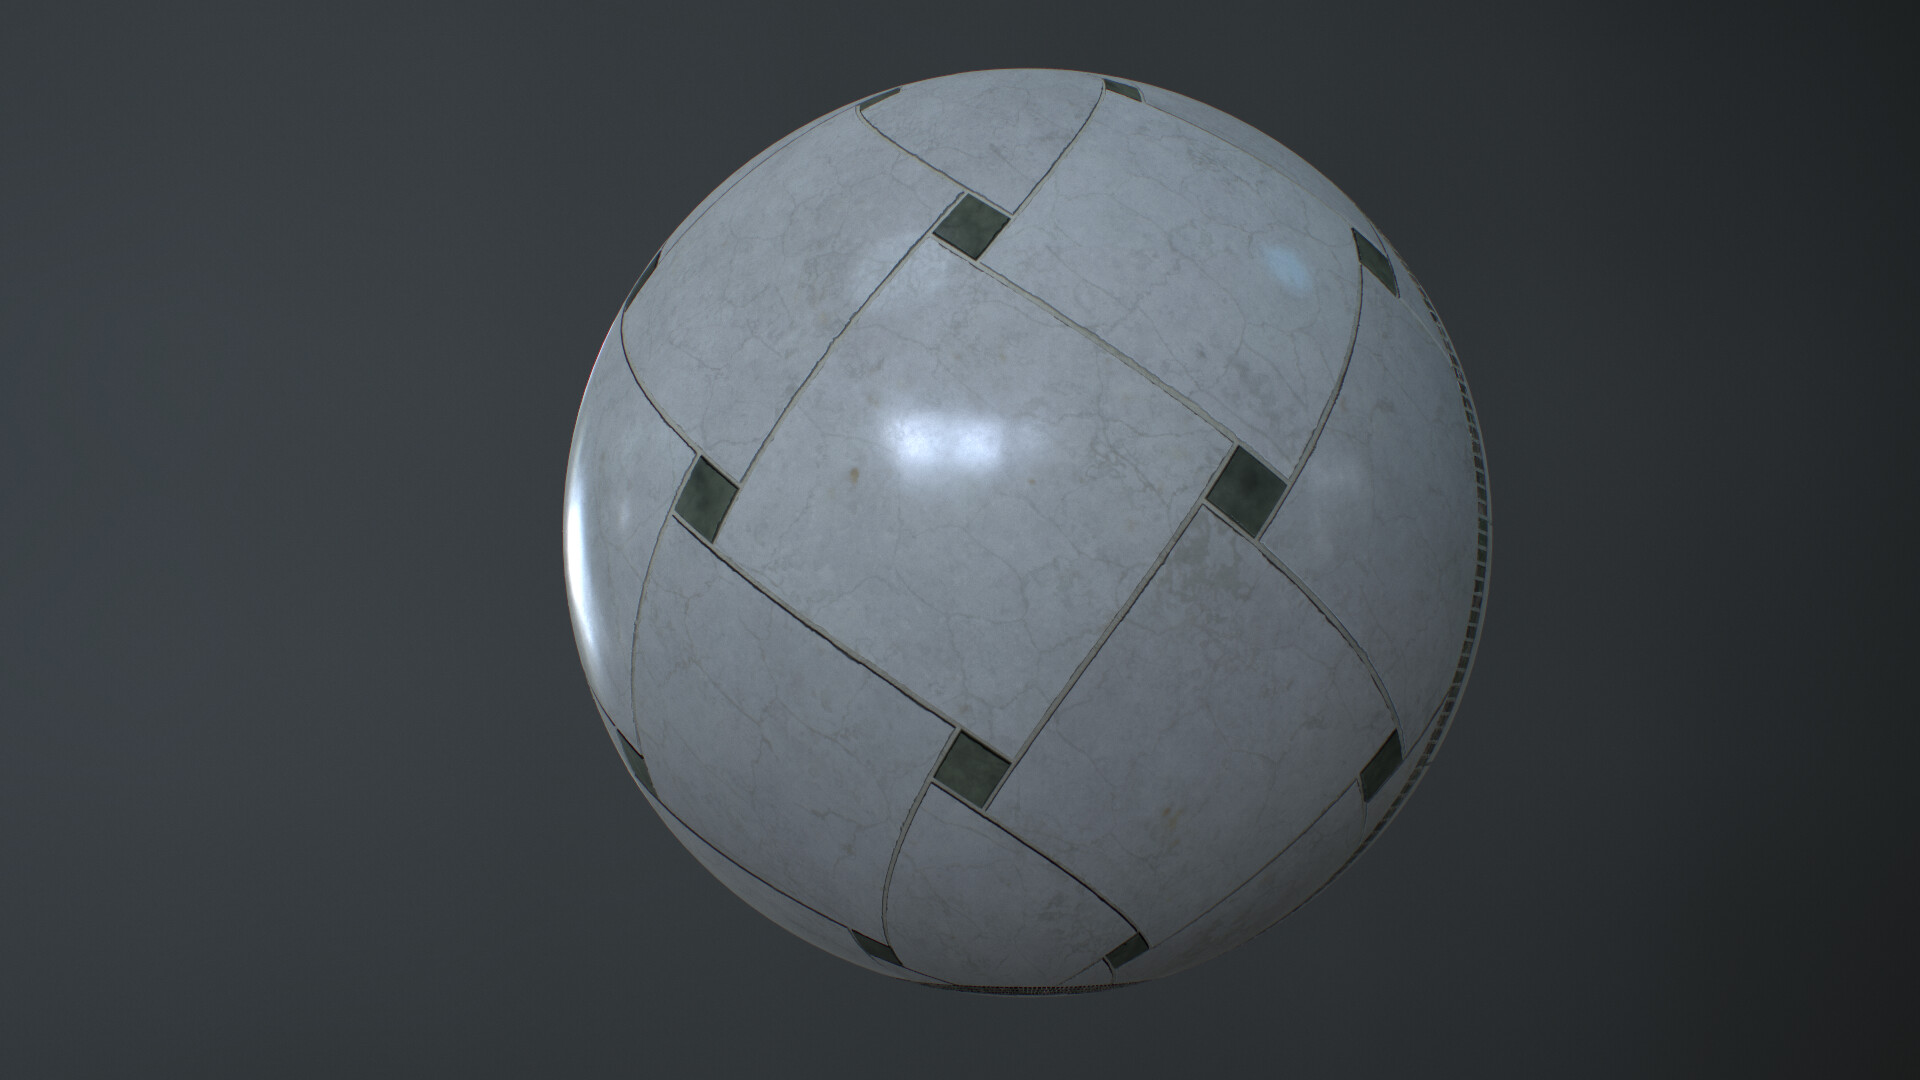 Overall look sphere